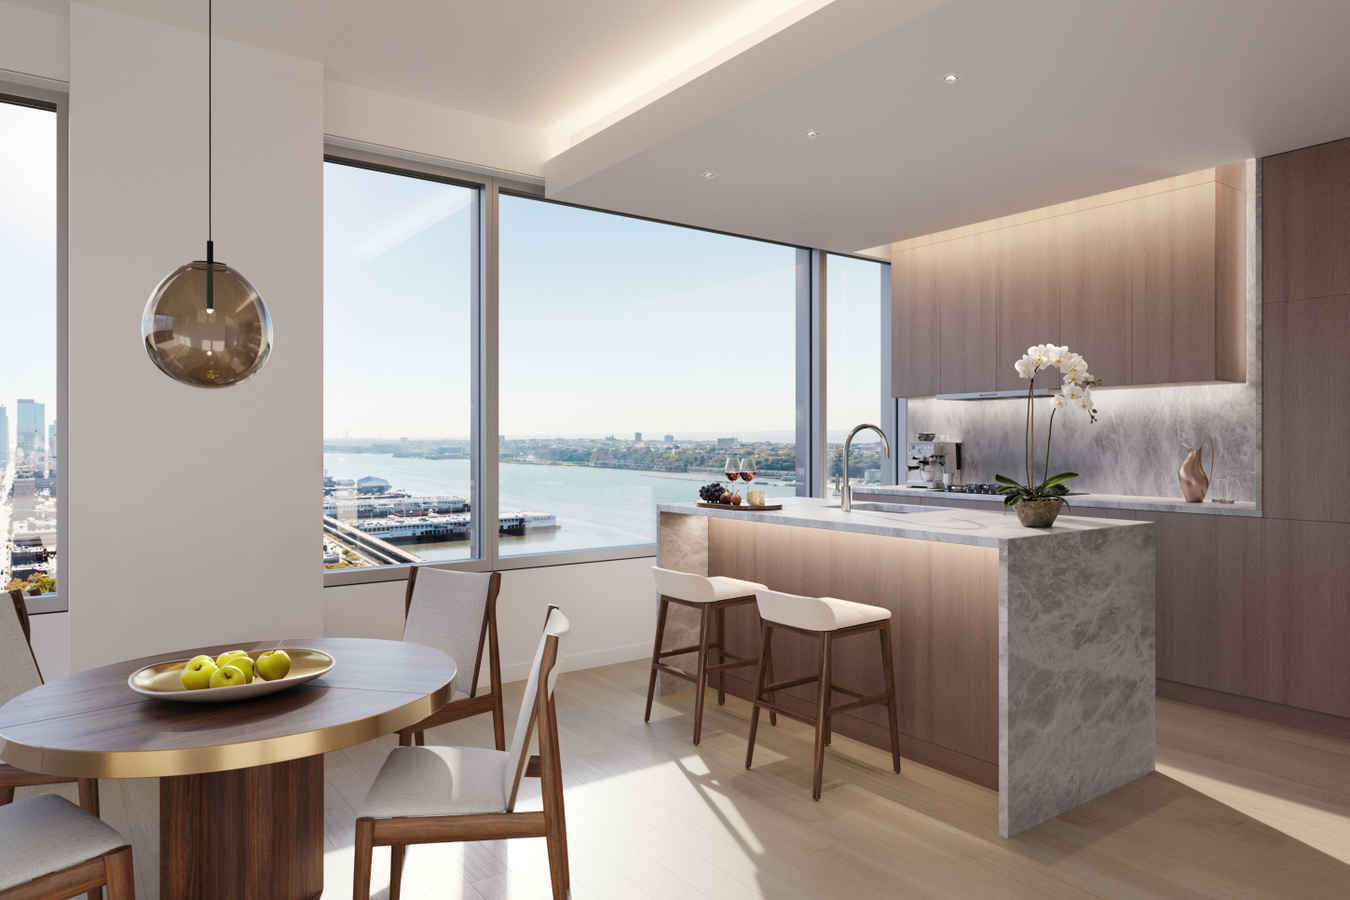 Apartment for sale at 611 West 56th Street, Apt 5-E